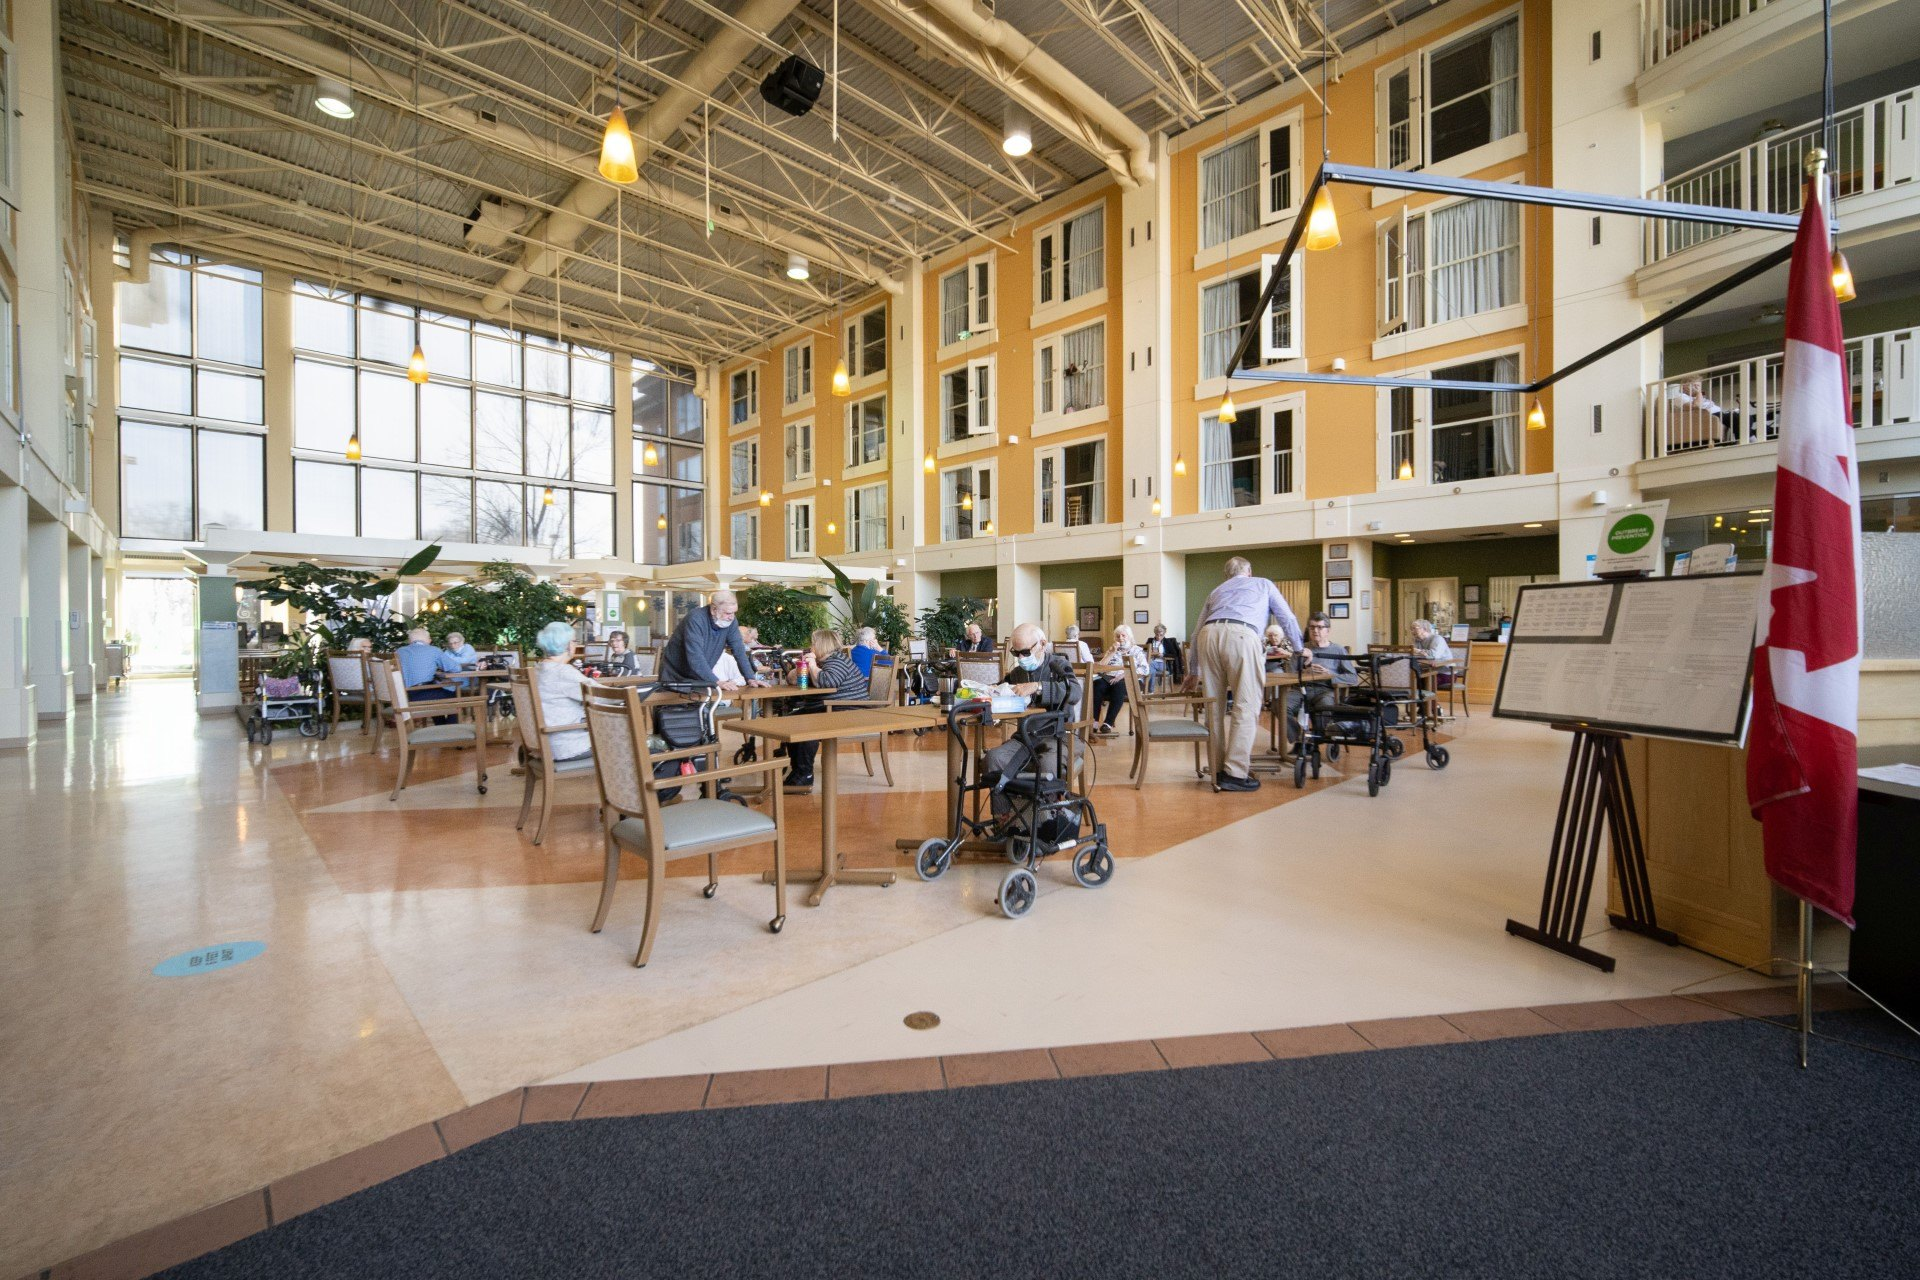 Spacious common area for dining and friendly interactions